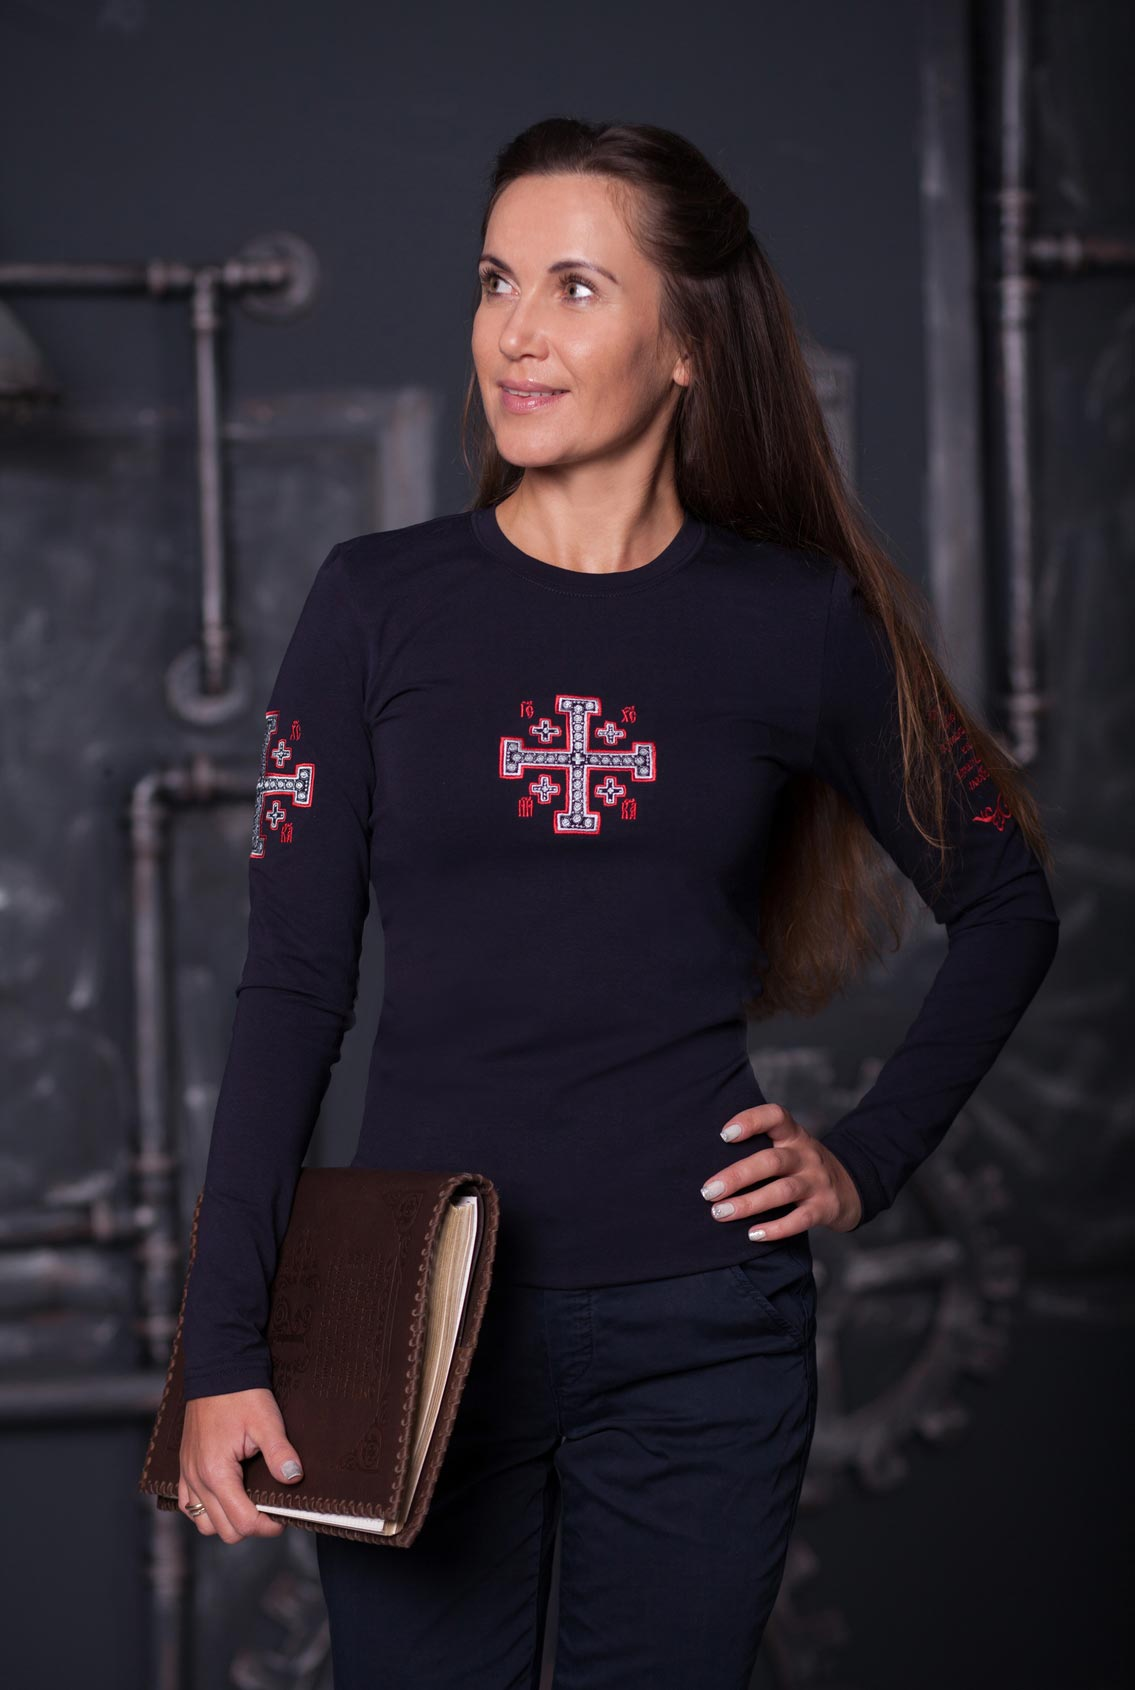 футболка с крестом, T-shirt with cross